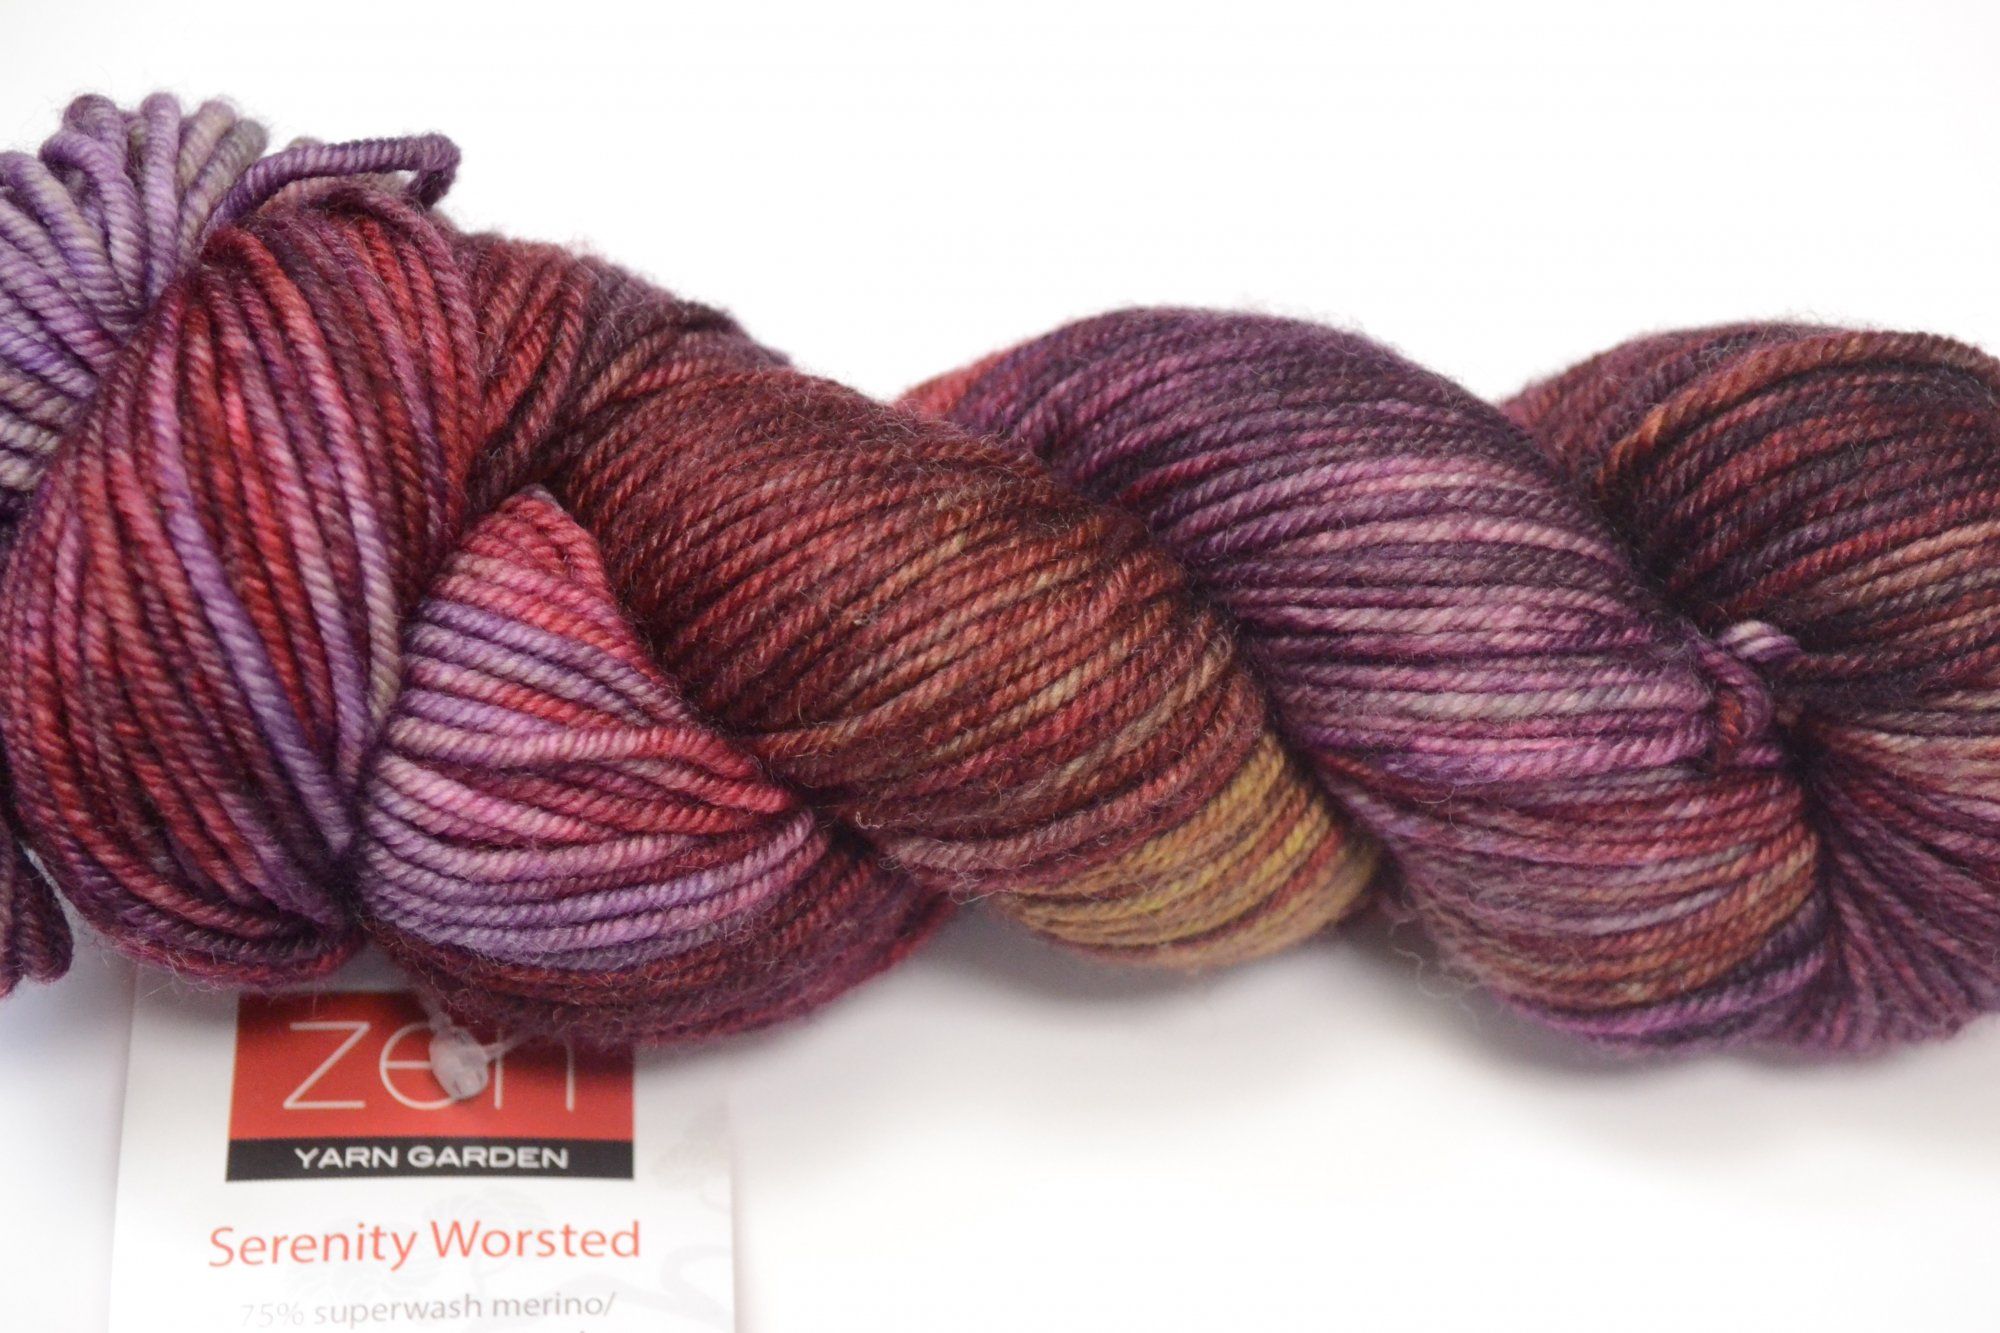 Serenity Worsted